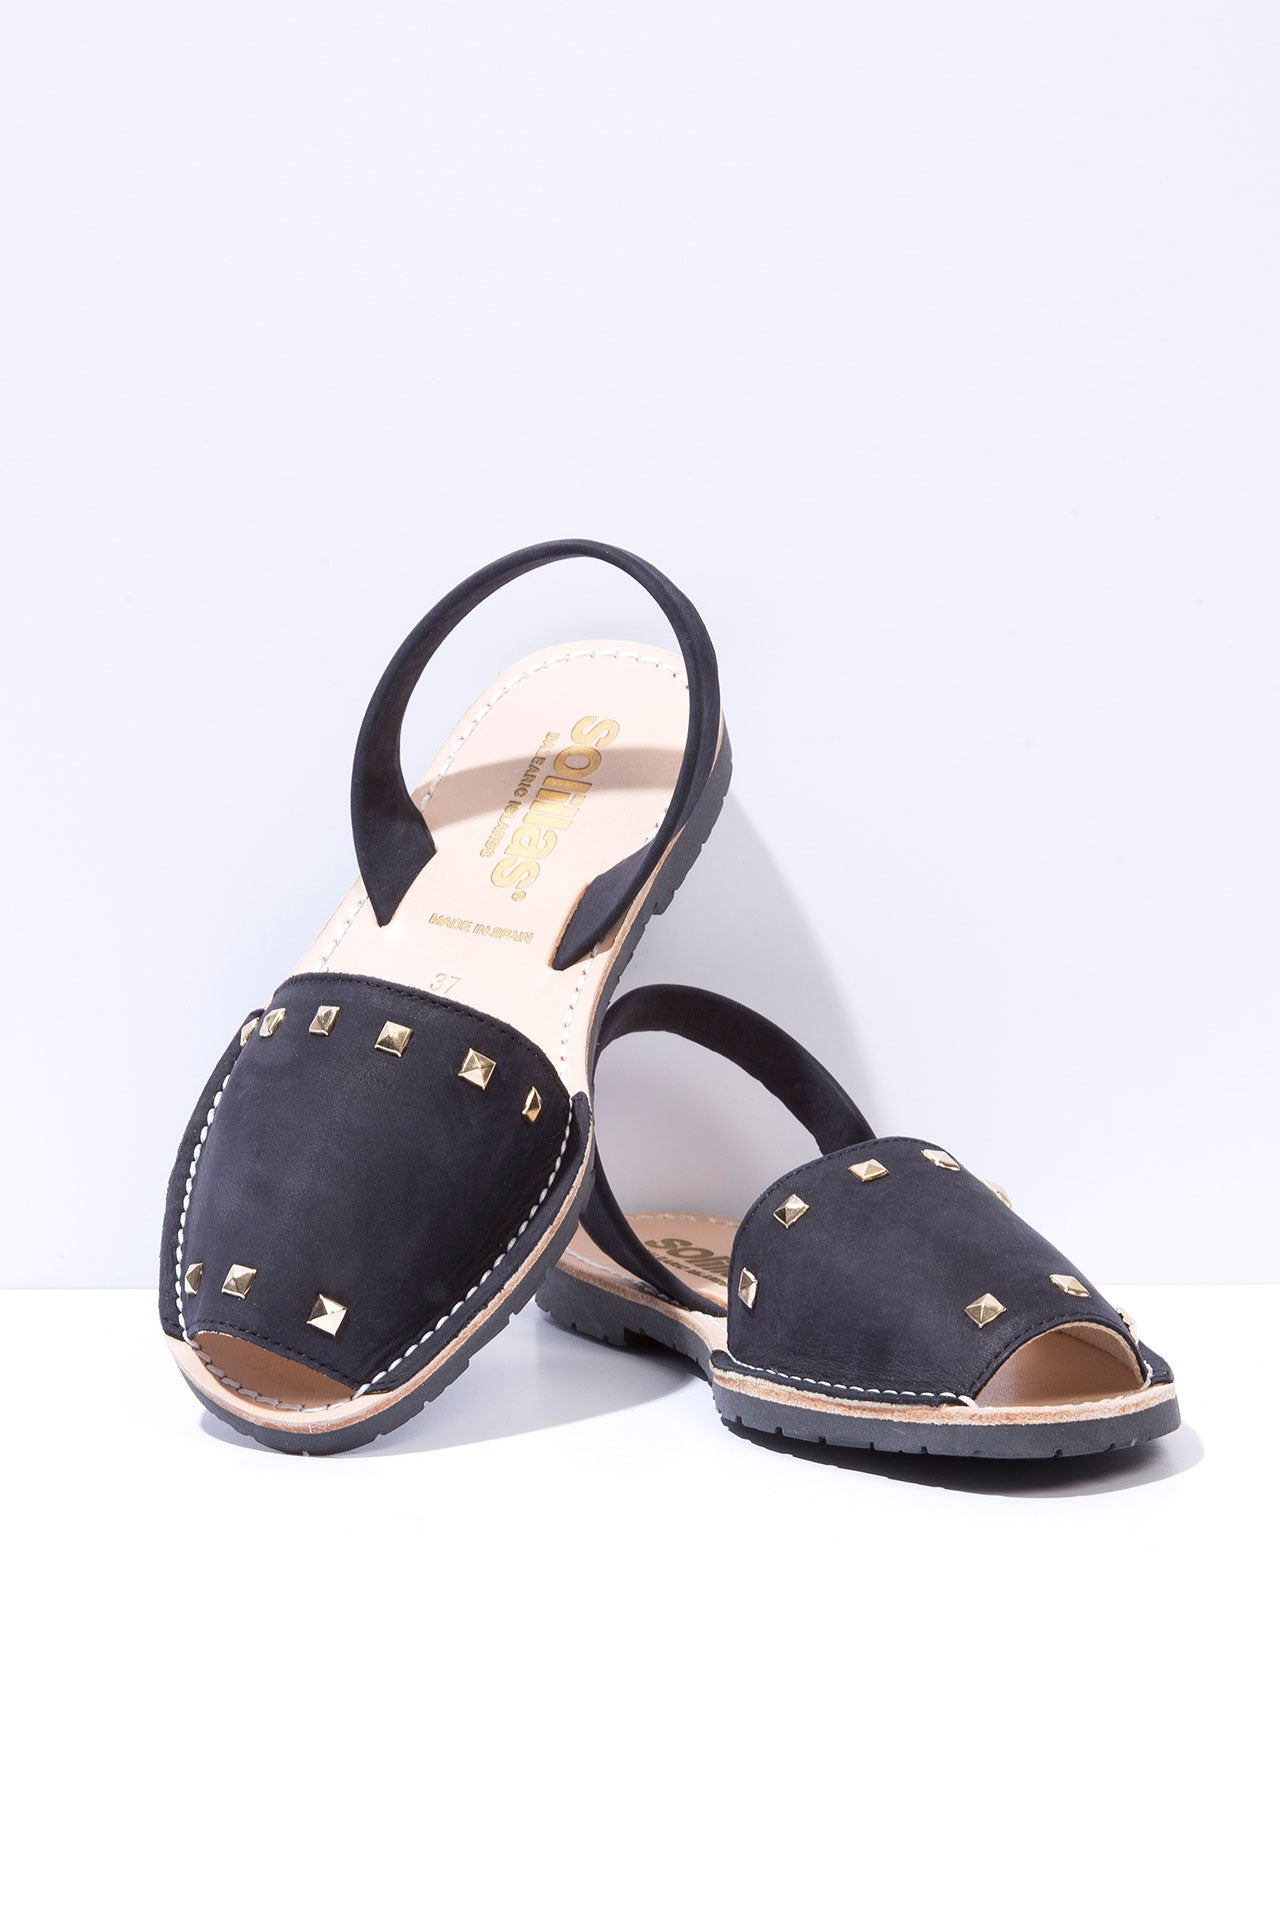 Noche Clavo - Studded Leather Menorcan sandals